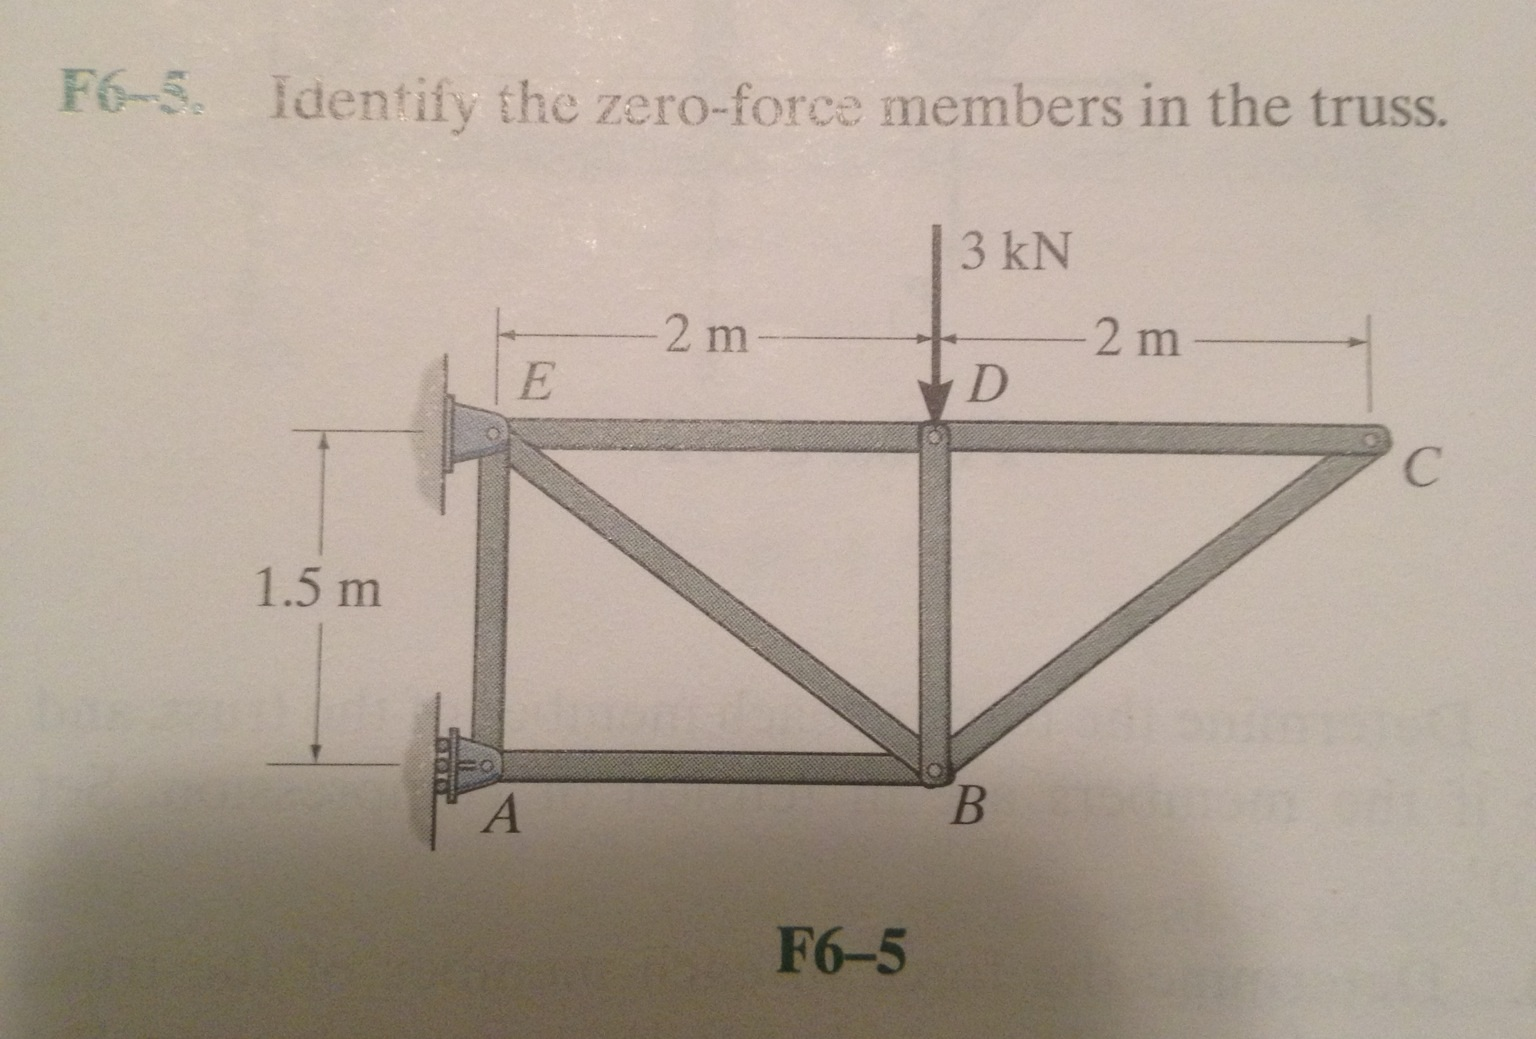 Identify the zero-force members in the truss.